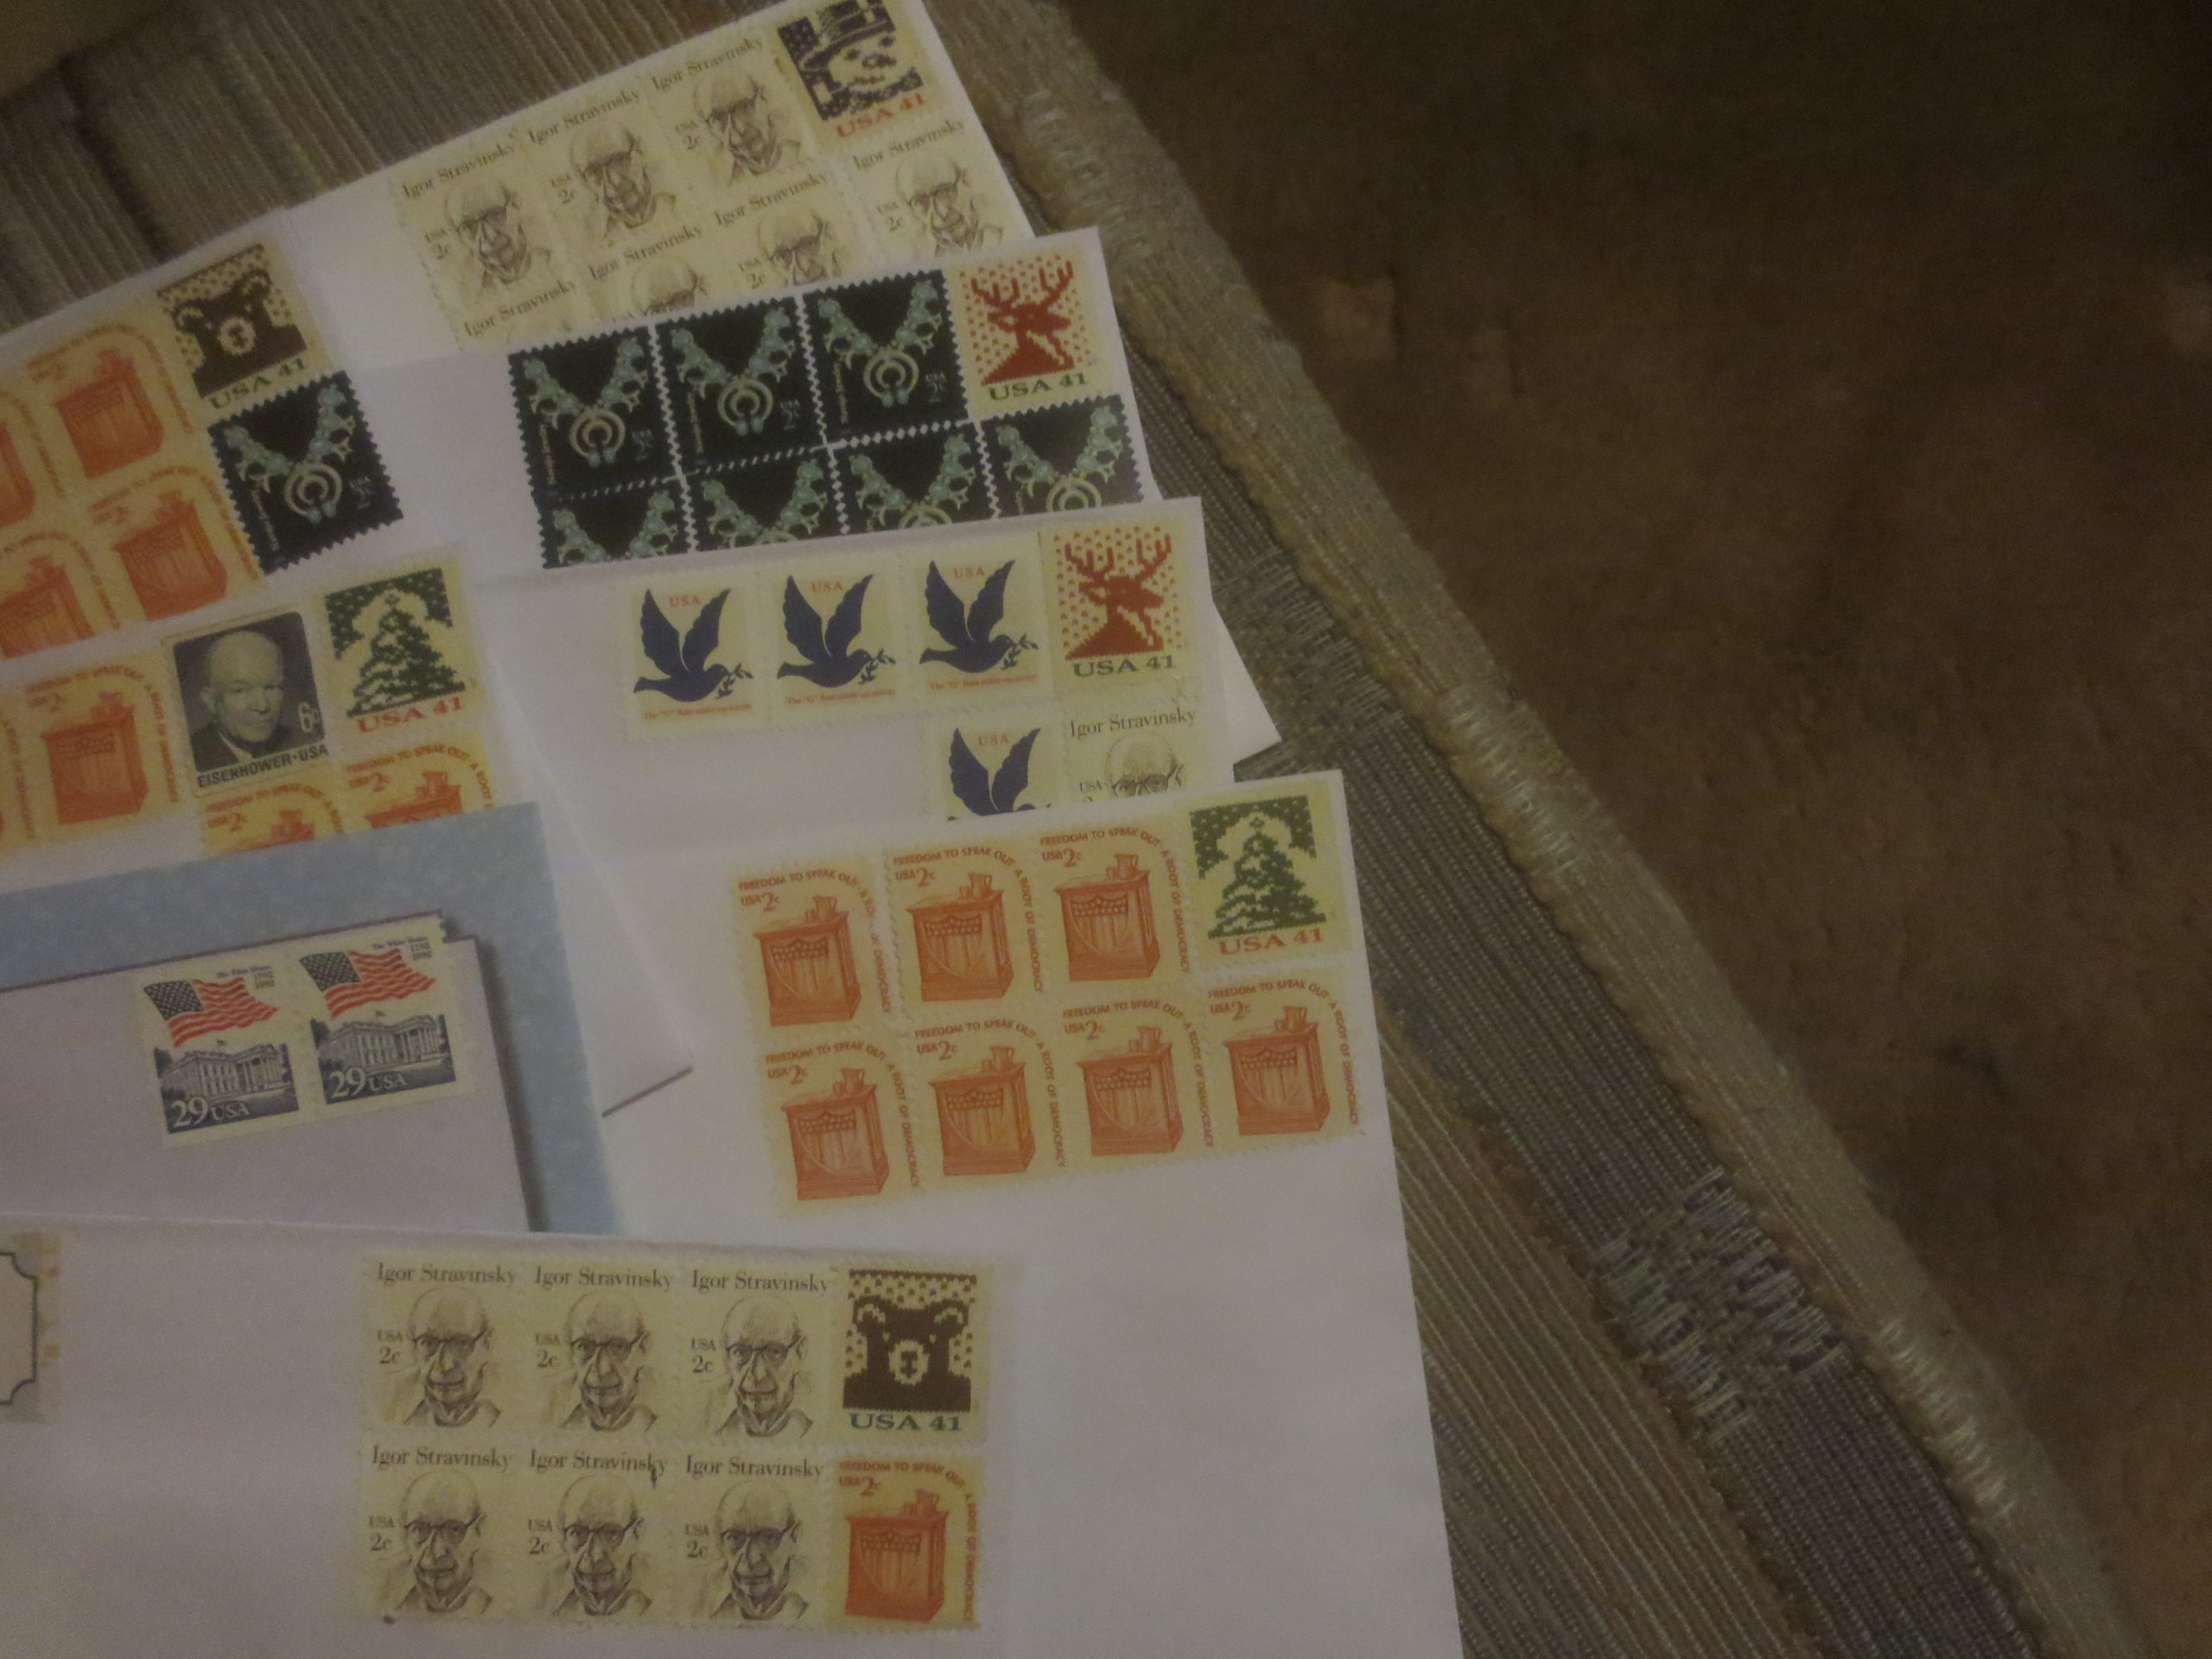 Corners of envelopes laid out on a fabric background with various combinations of stamps on them